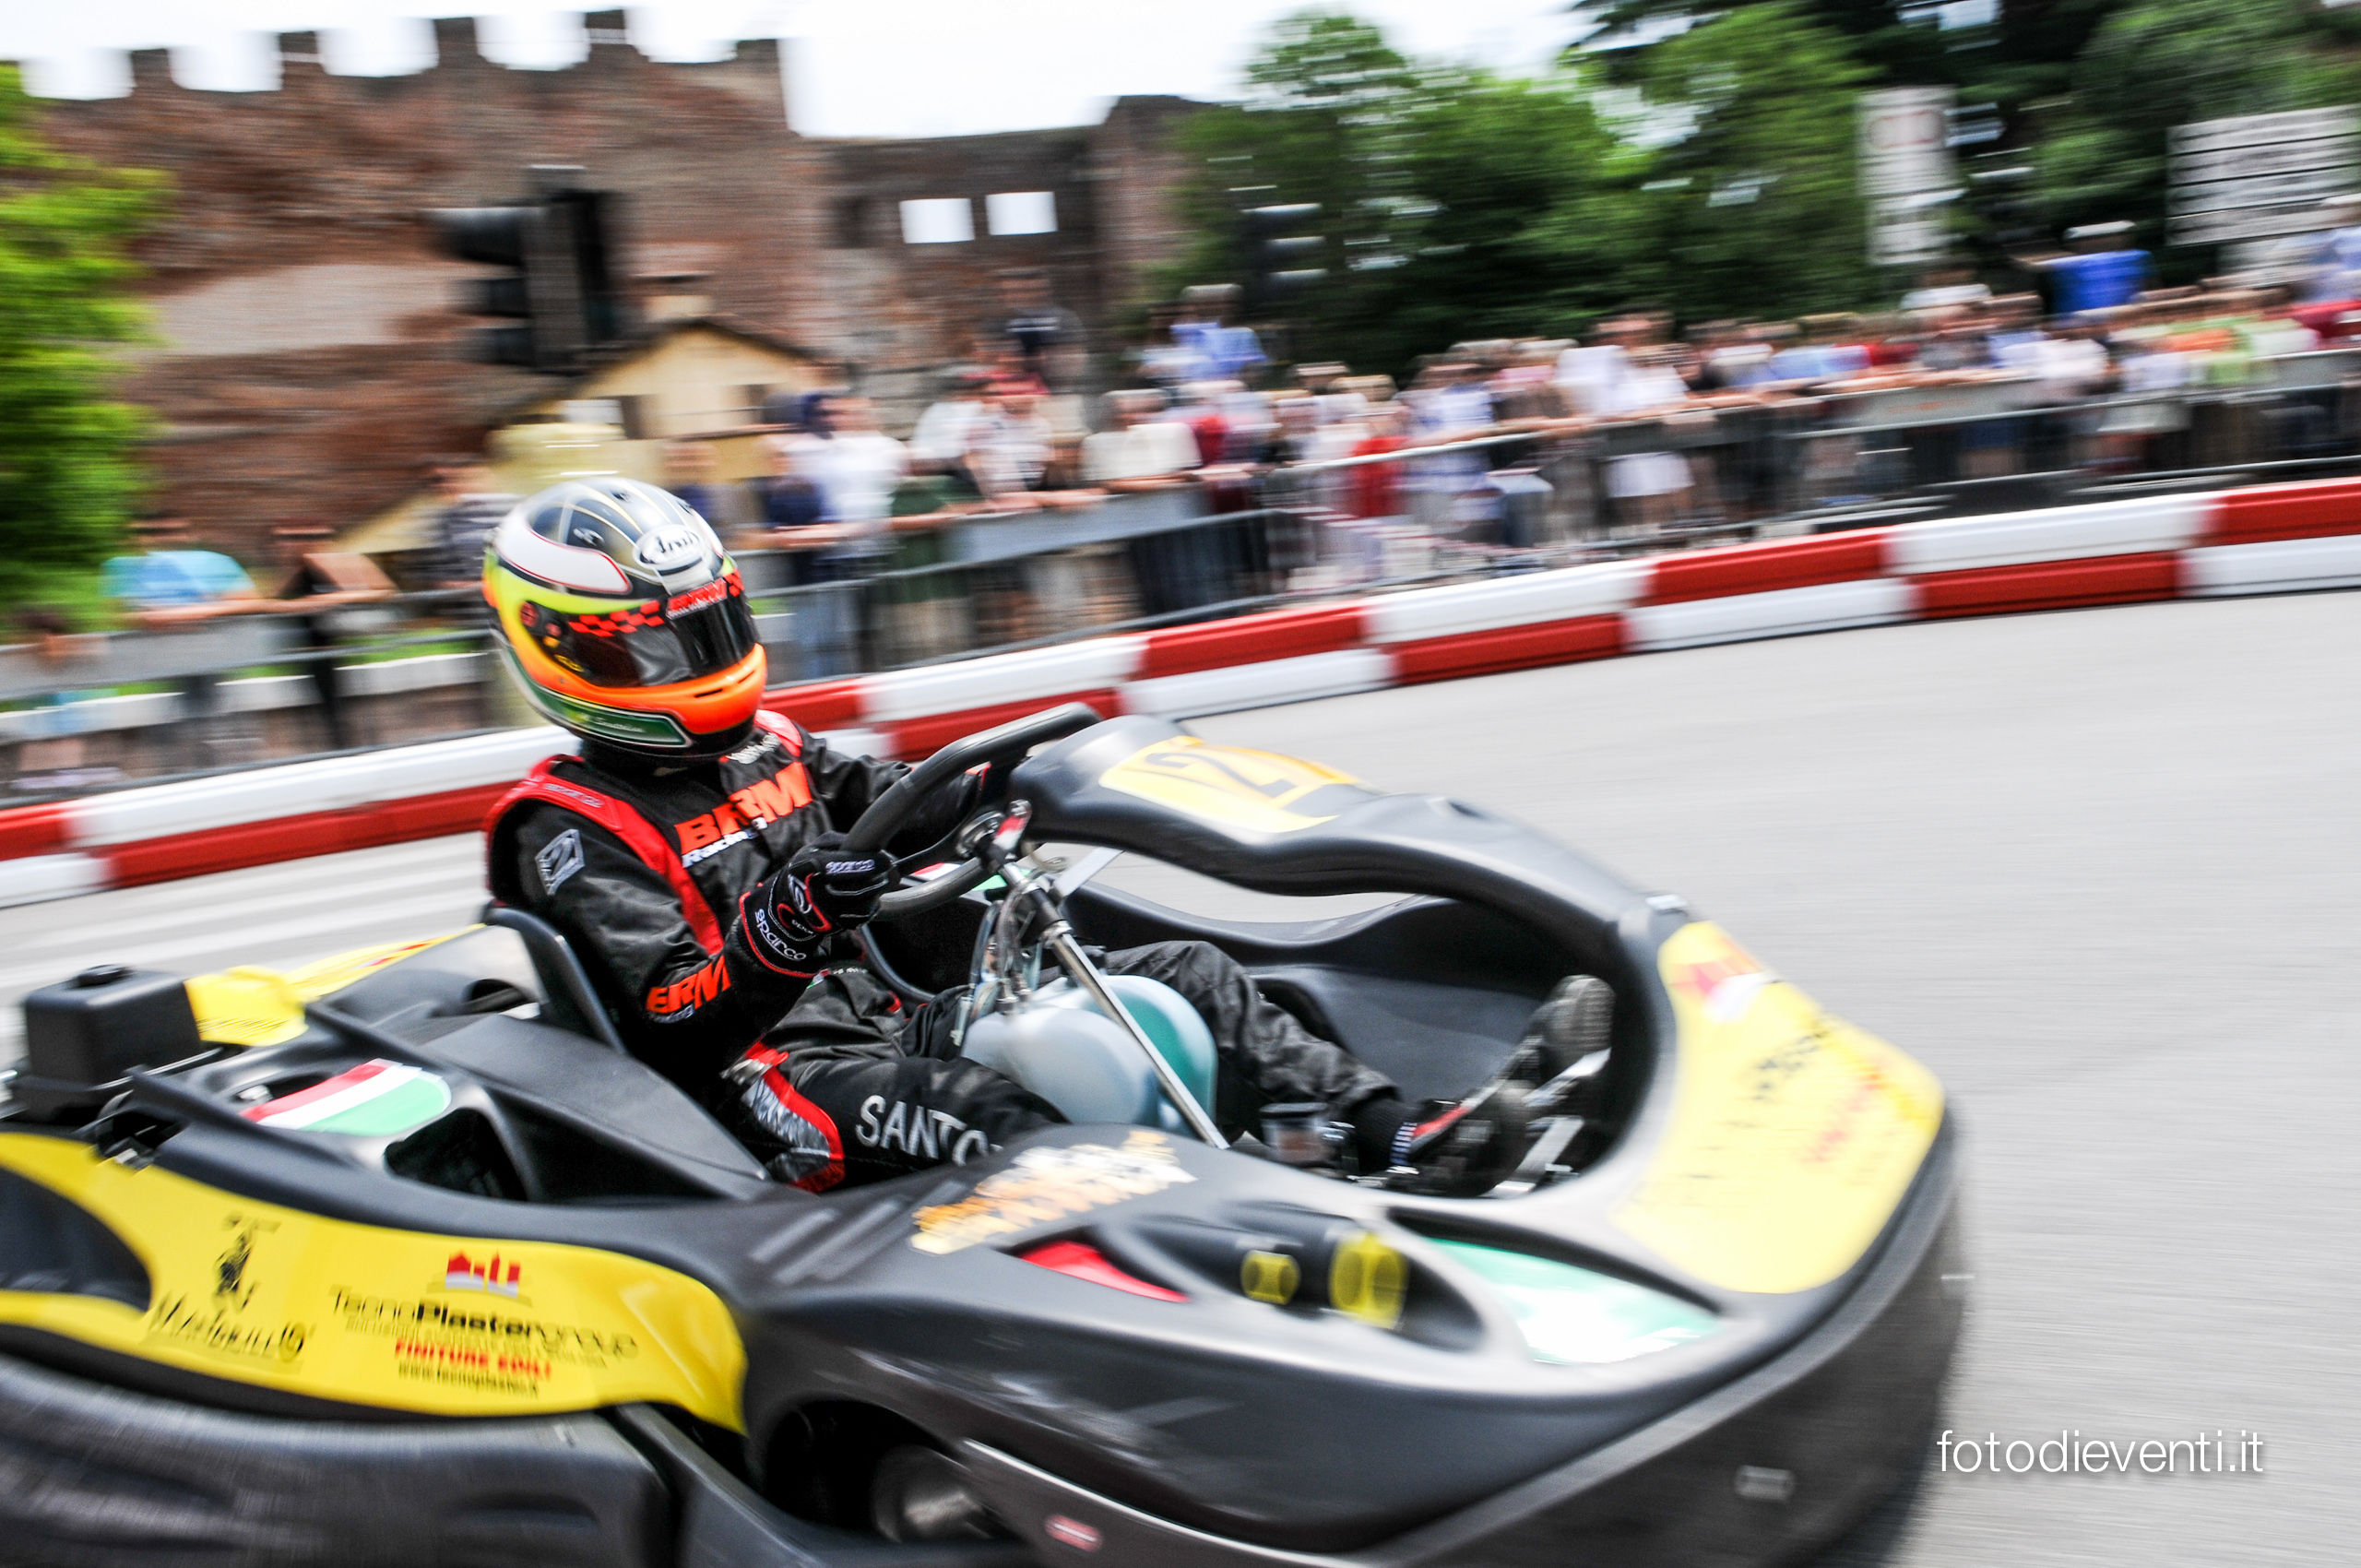 2 GOkart in Piazza @ Catelfranco Veneto (TV)